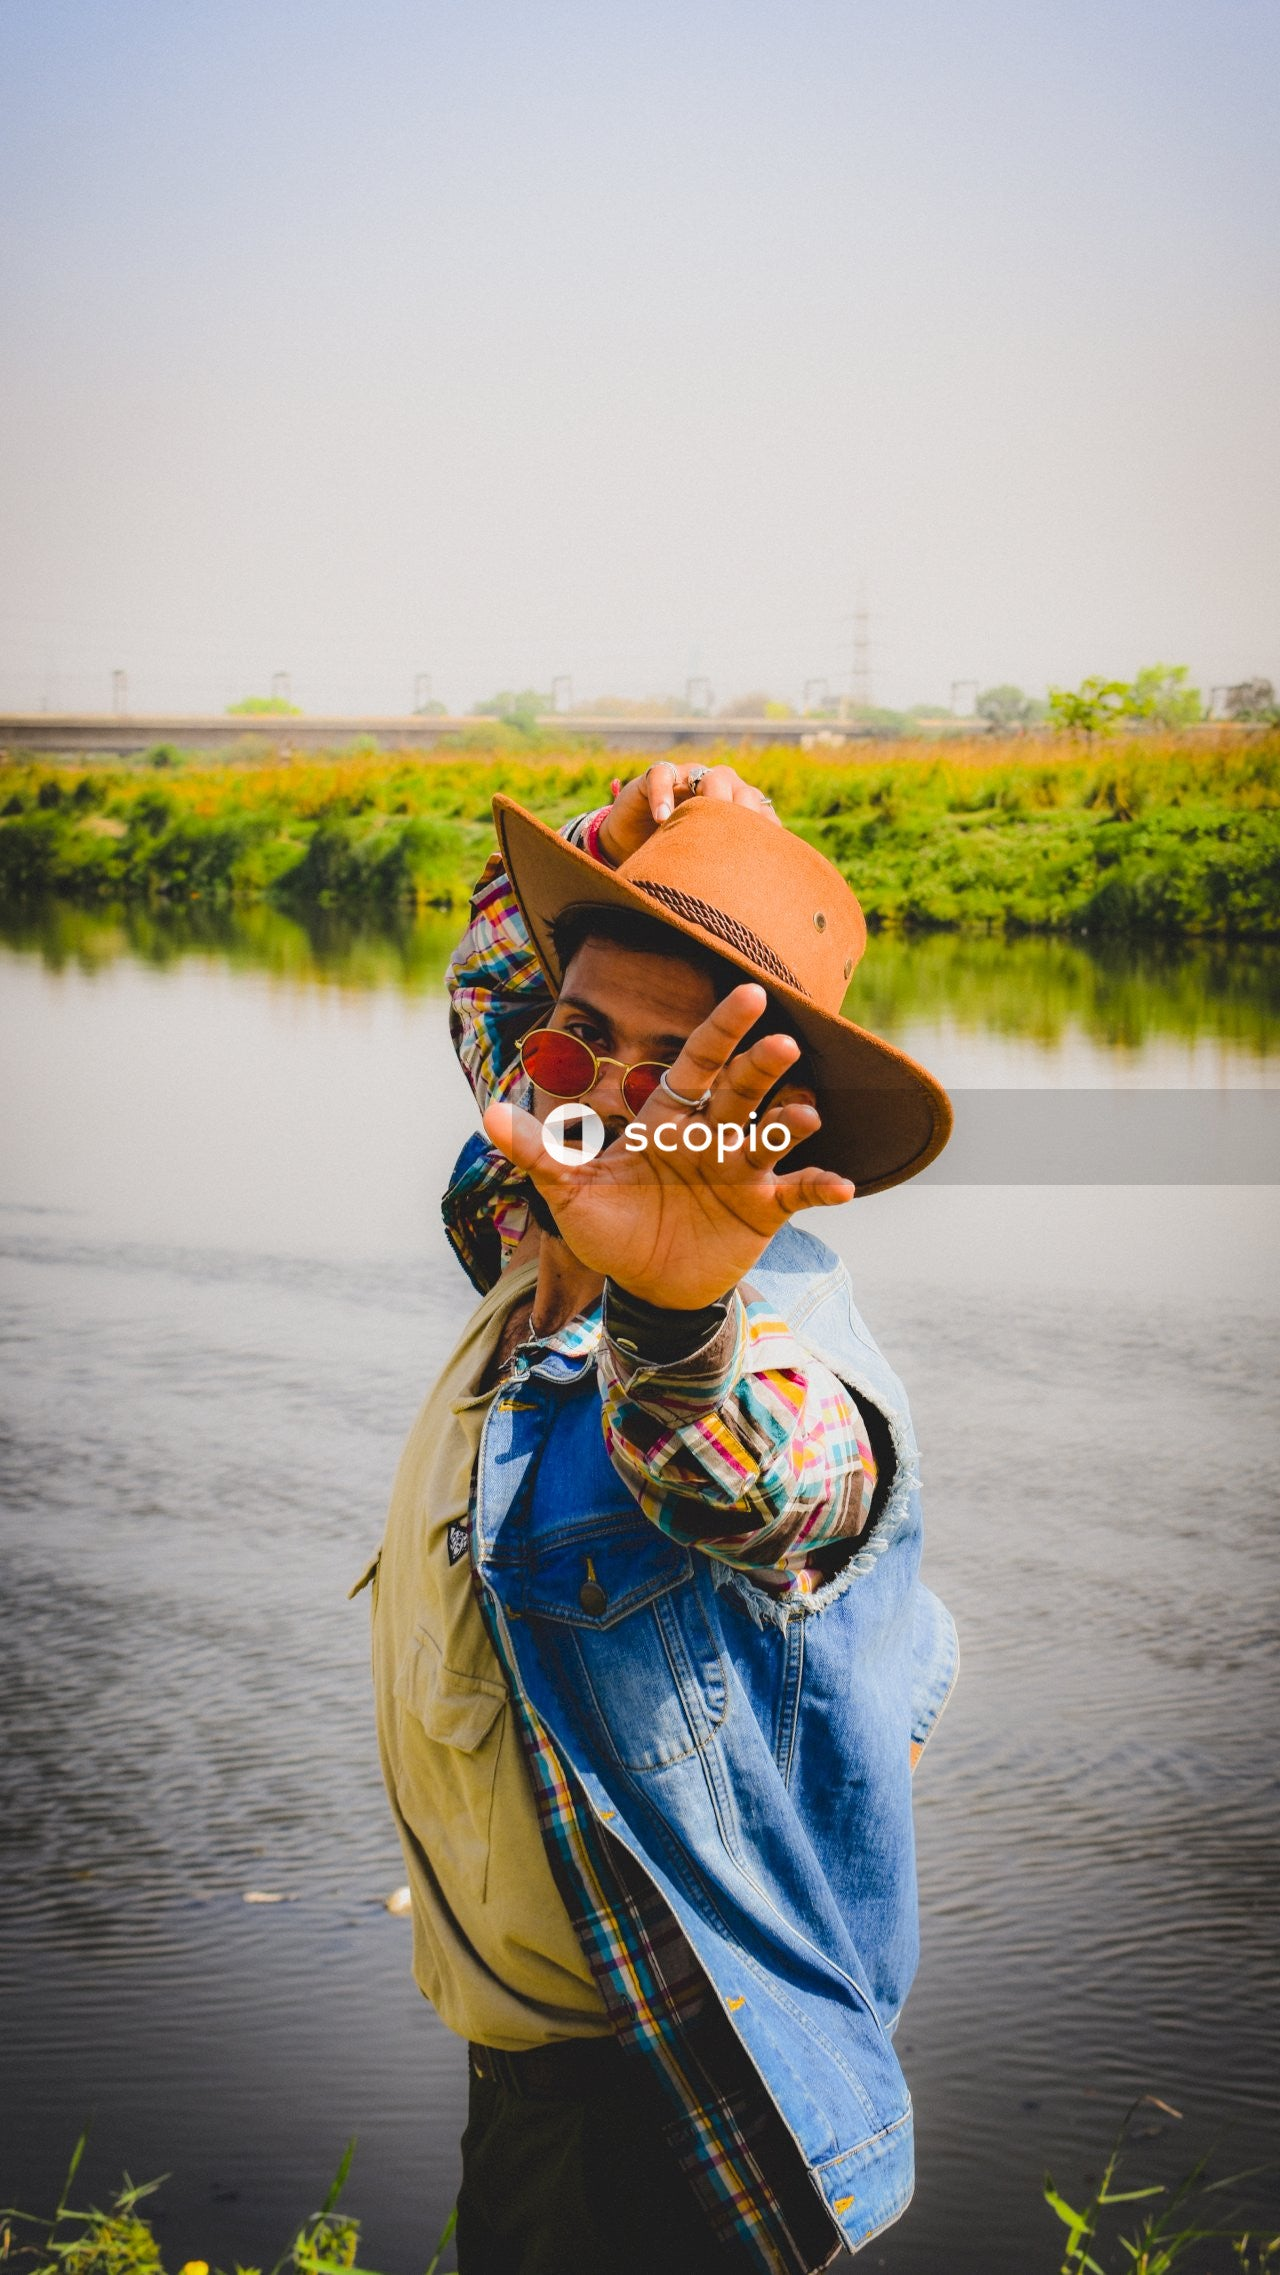 Woman in blue denim jacket wearing brown hat standing near body of water